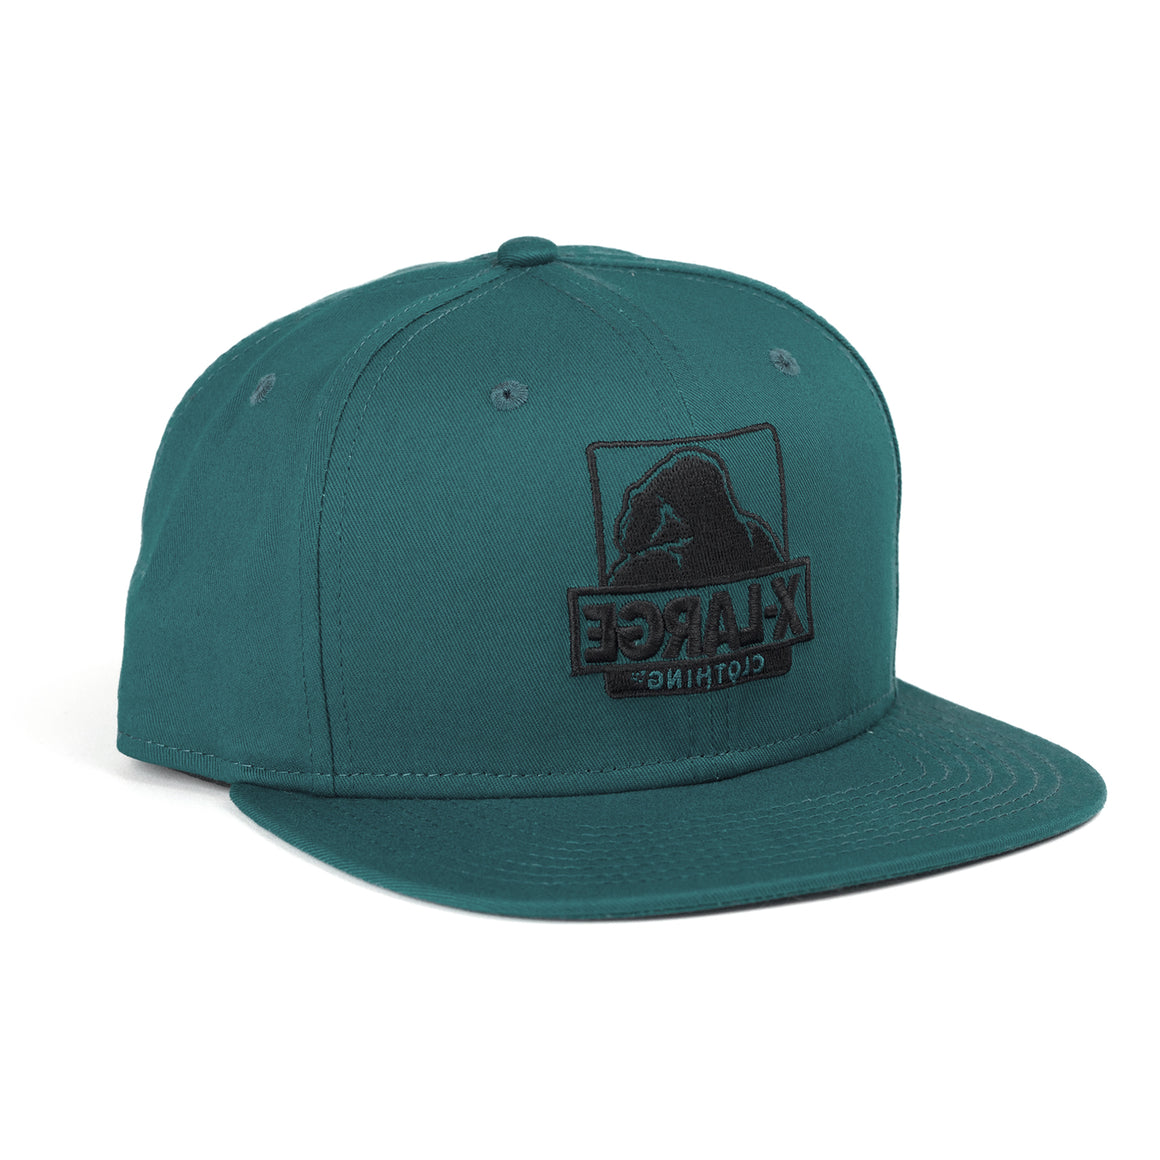 FLIPSIDE NEW ERA HAT